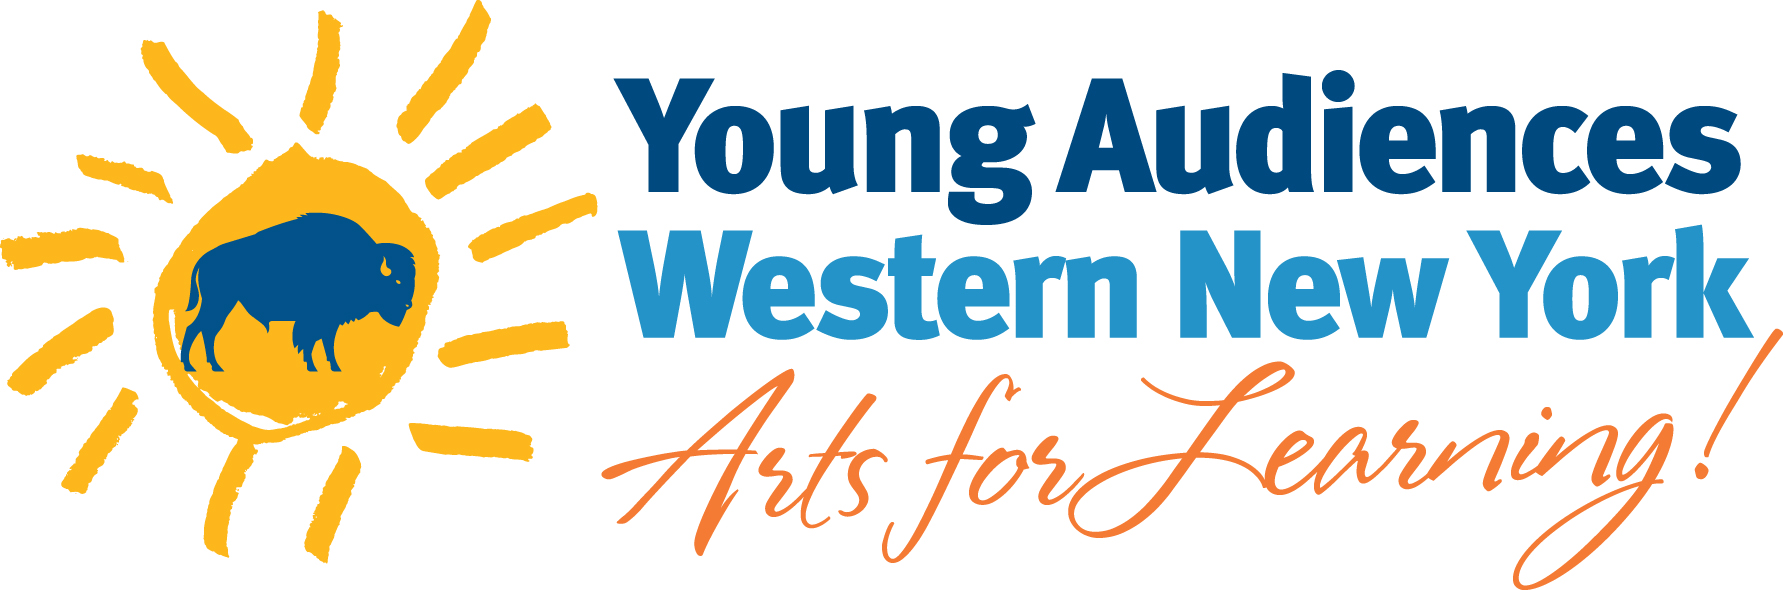 Mural: Young Audiences ArtWorks Program